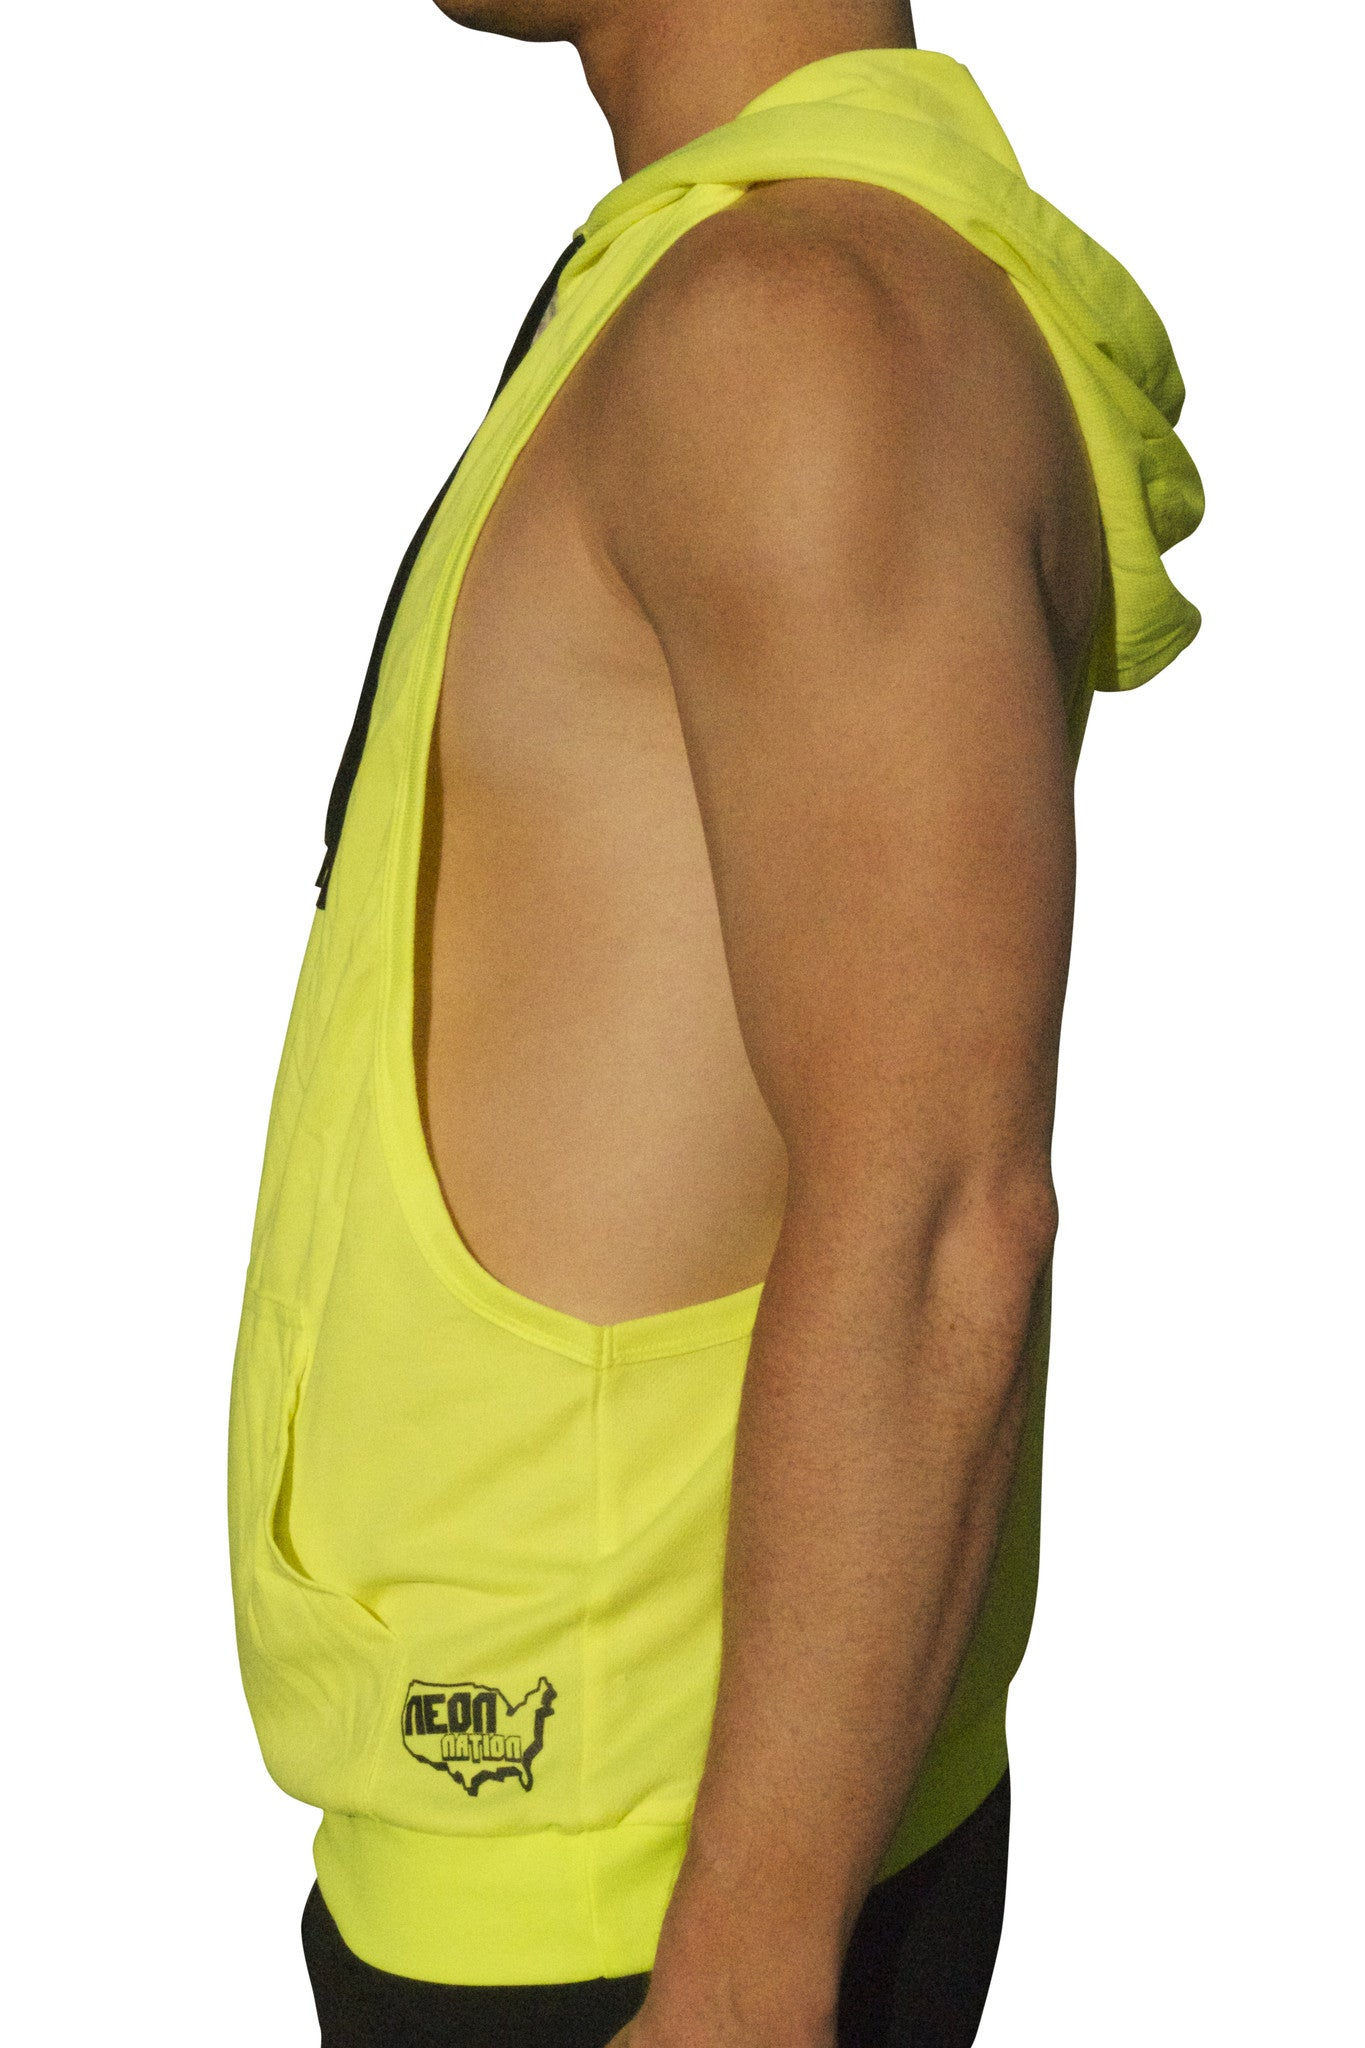 6850231c6c2a01 Neon Nation Muscle Cut Athletic Bodybuilder Stringer Tank Top Hoodie - Neon  Nation